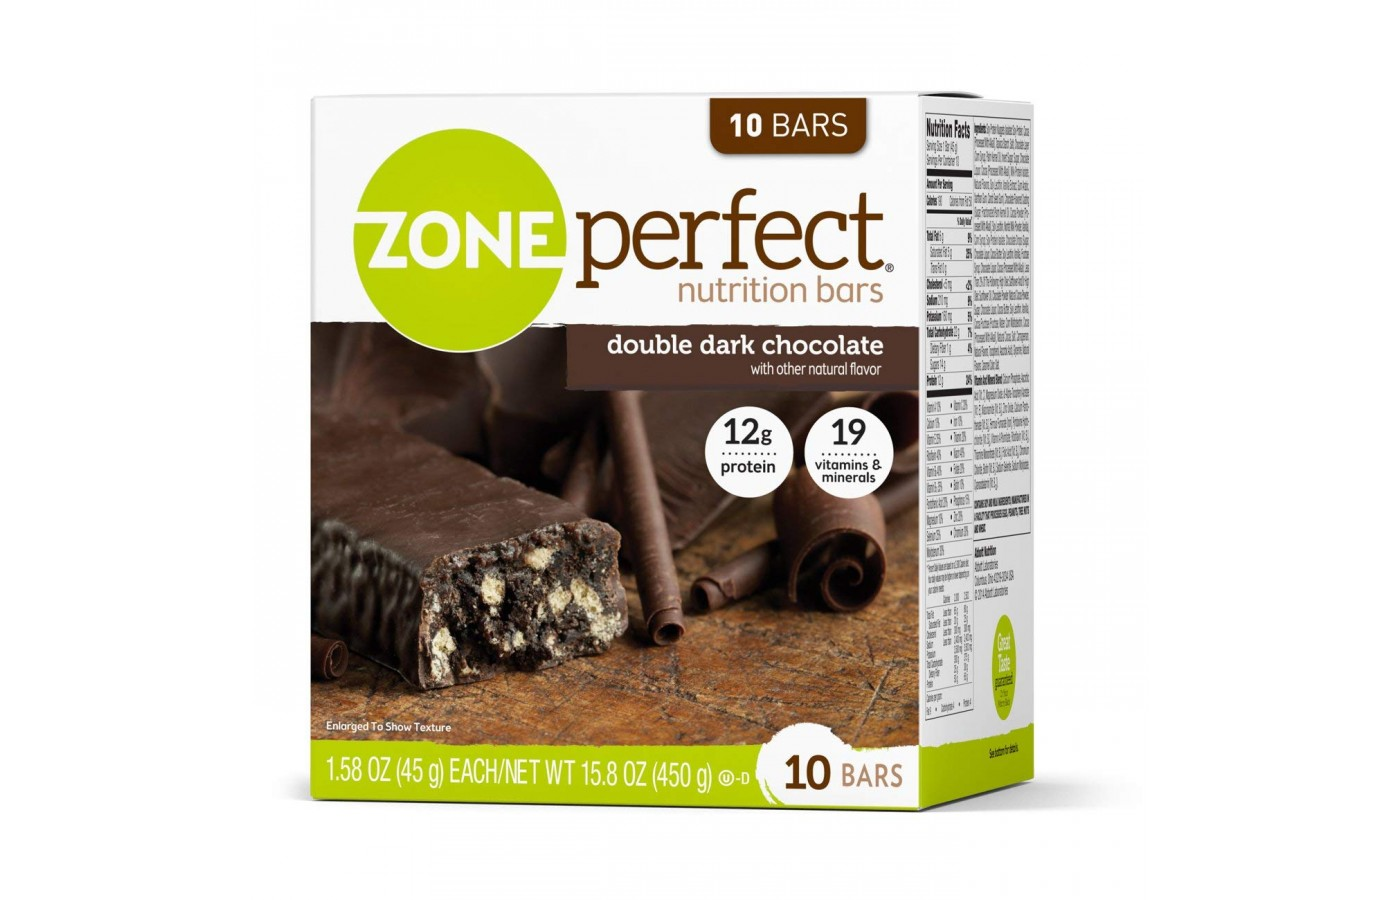 zone perfect box